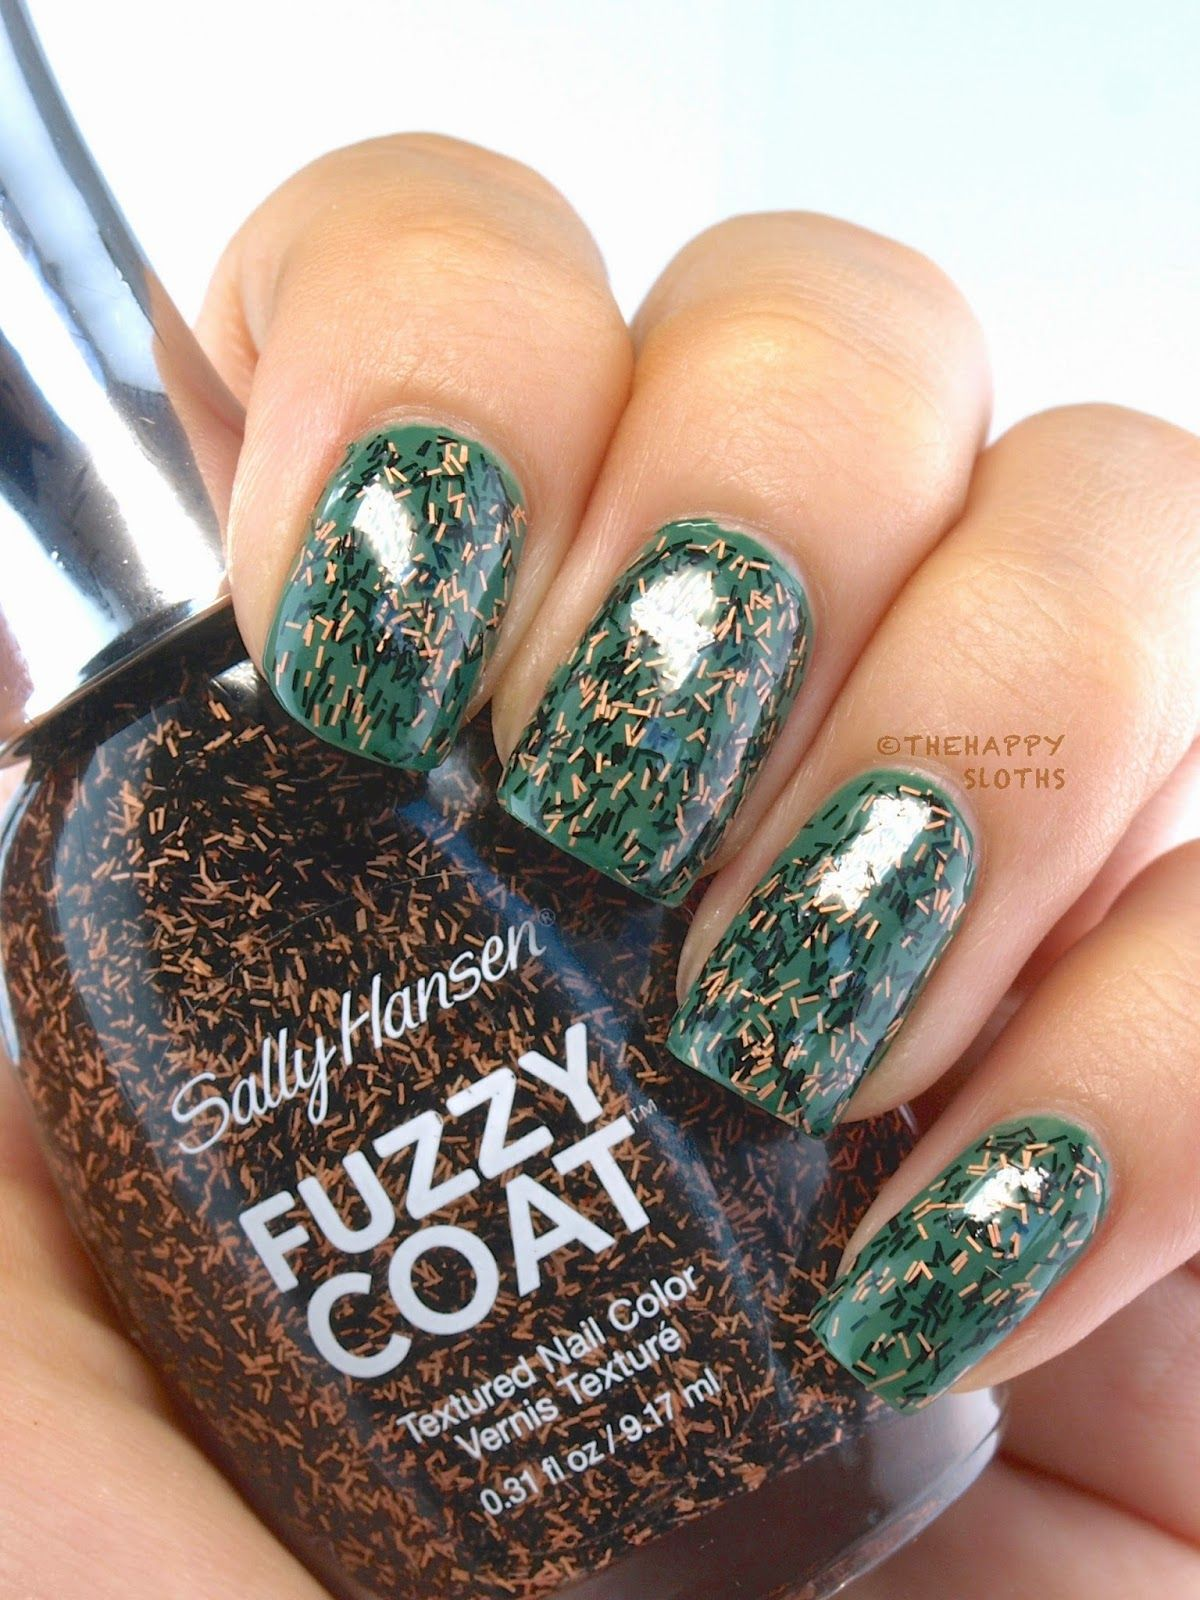 Sally Hansen Limited Edition Special Effects Fuzzy Coat ...